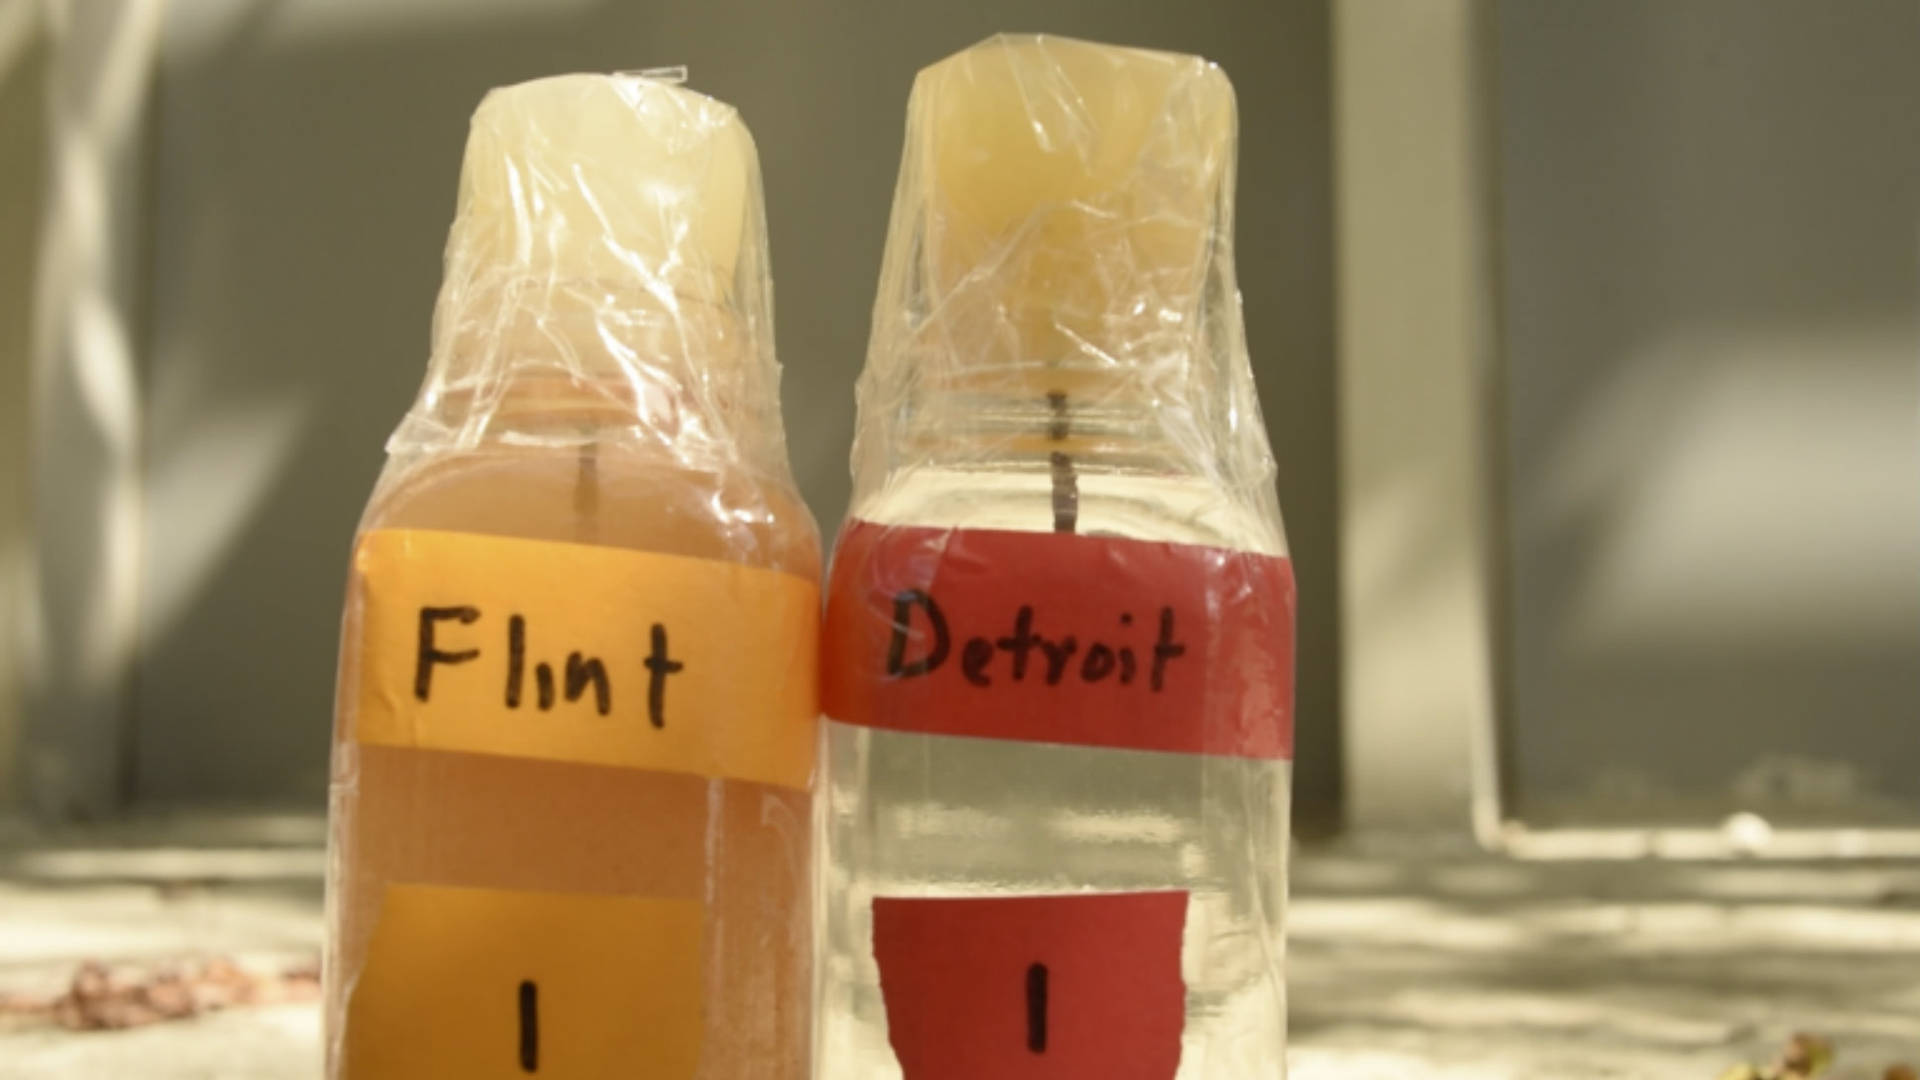 Flint Lead Poisoning And Promise Of >> We Had To Make Some Cuts Flint Water Catastrophe A Matter Of